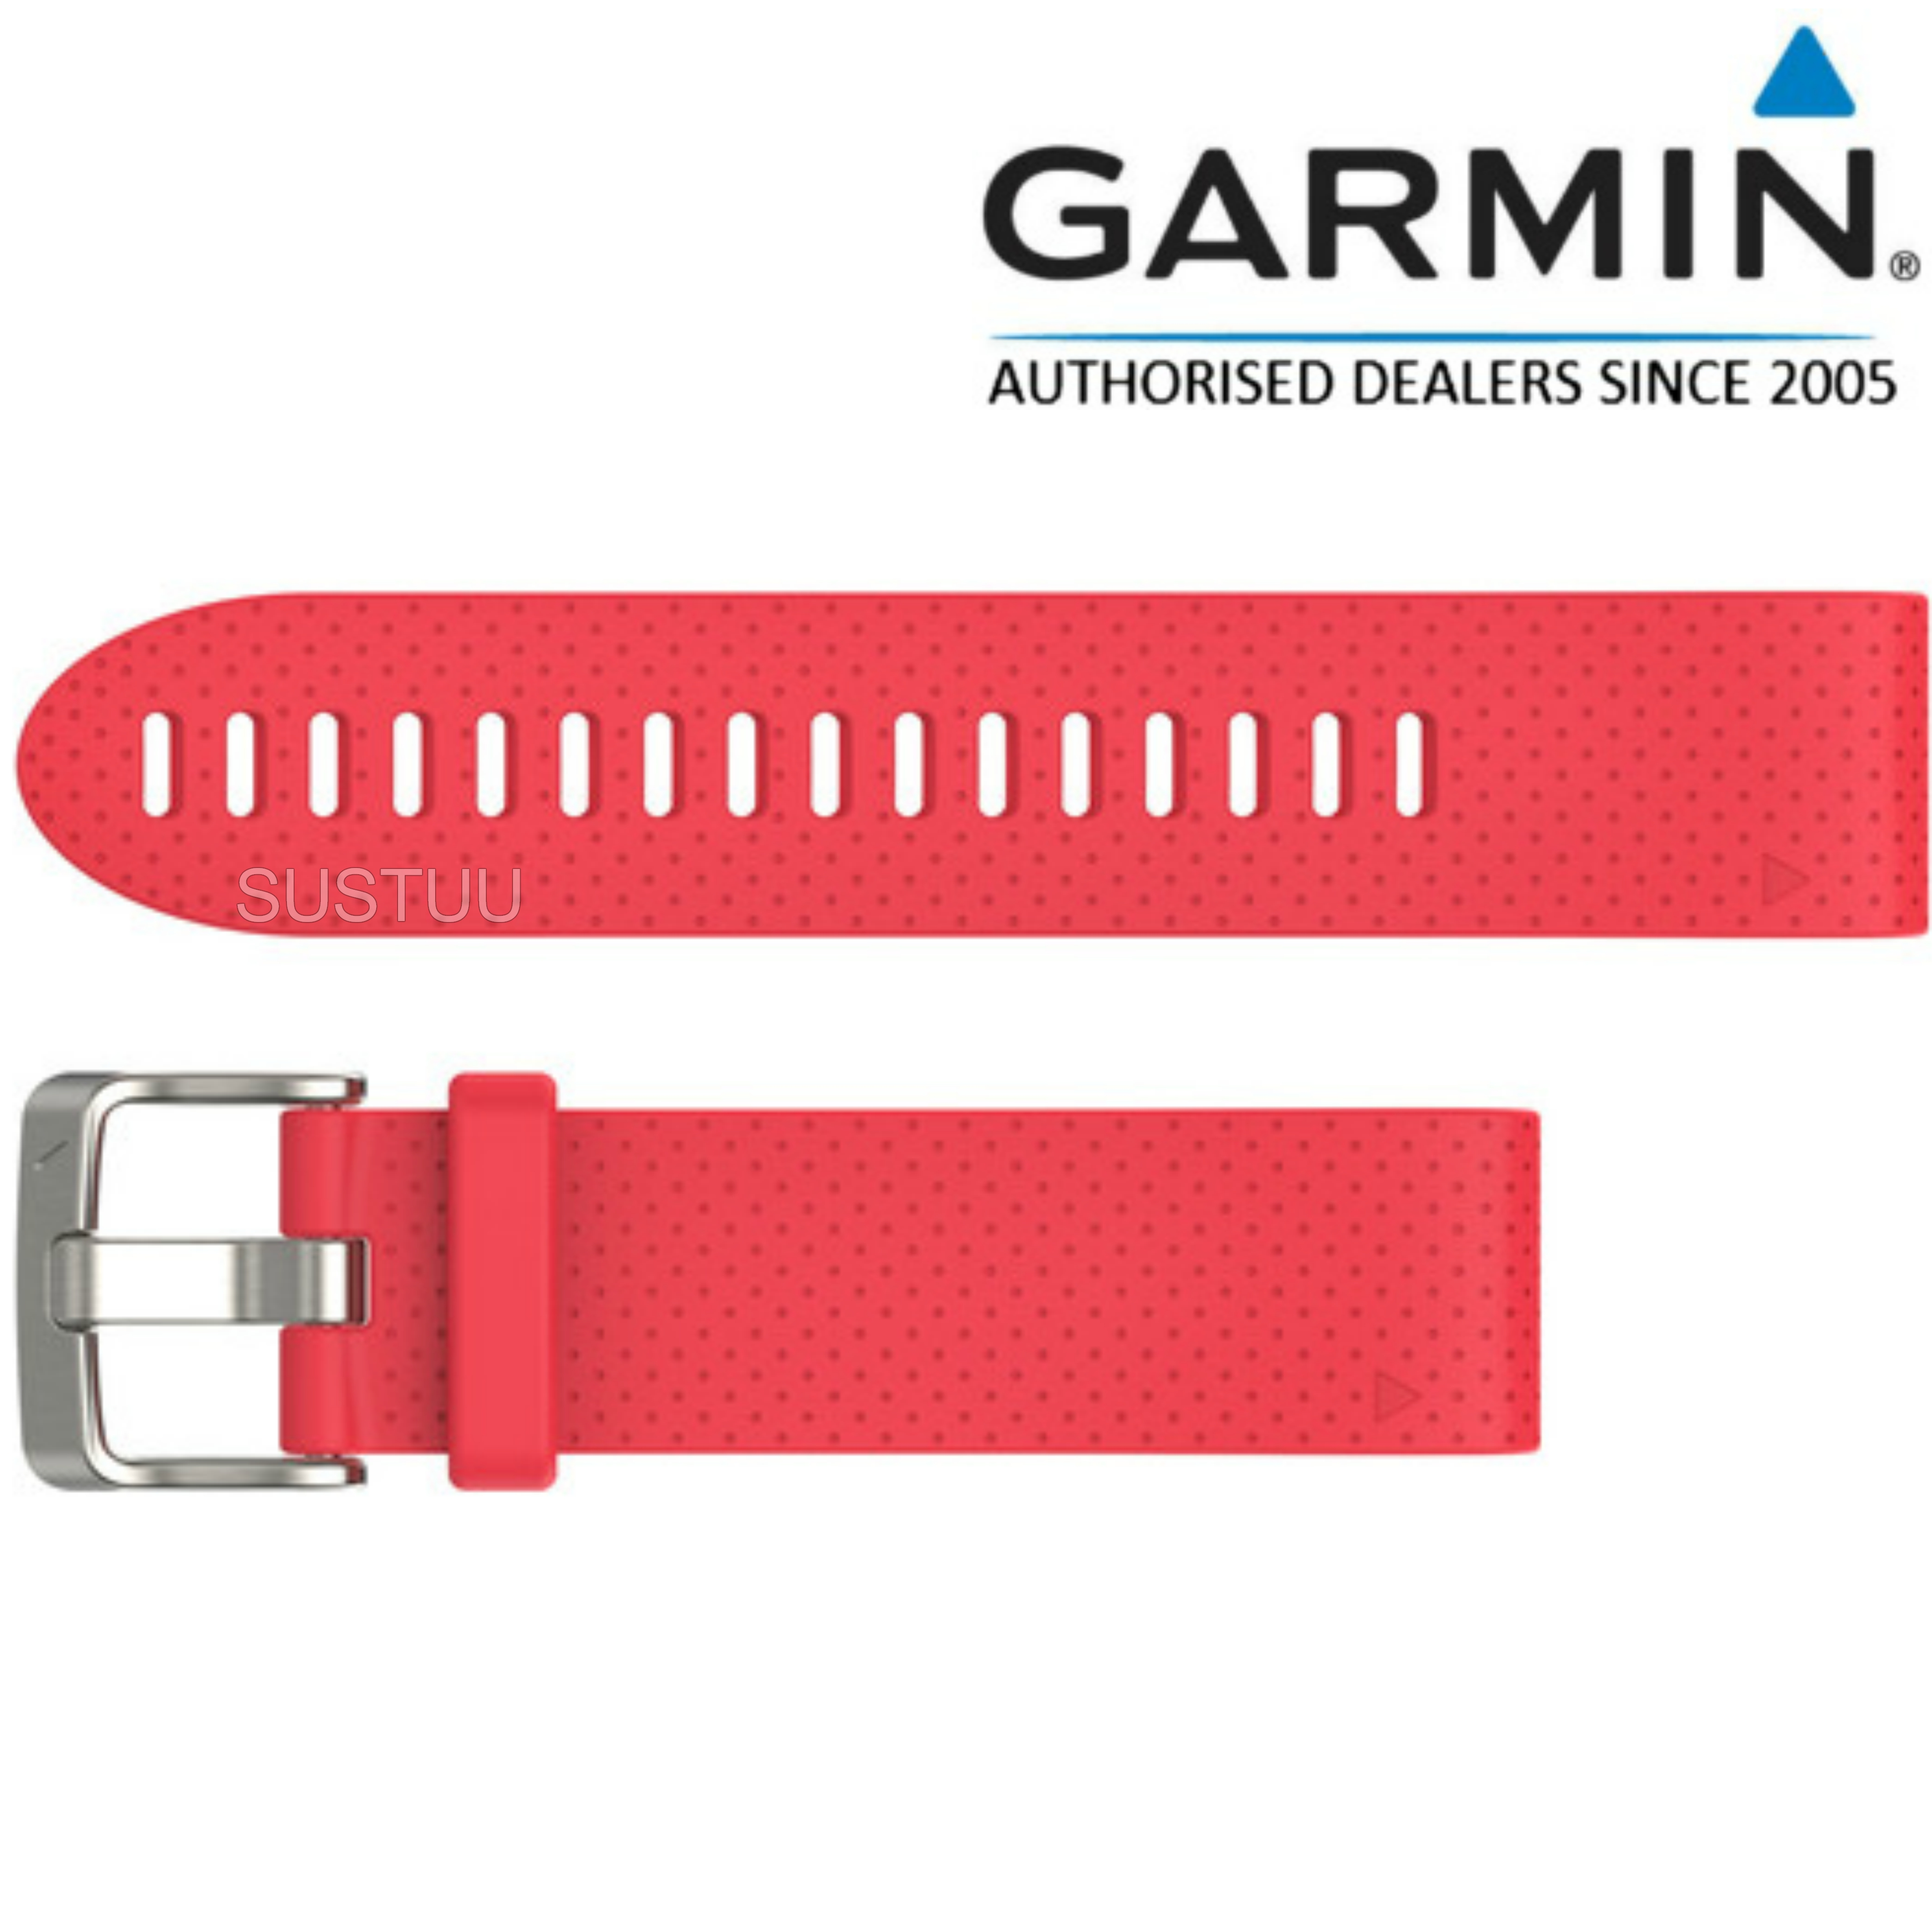 Garmin QuickFit Interchangable Watch Strap Band | 20mm | For Fenix 5s | Silicon-Pink